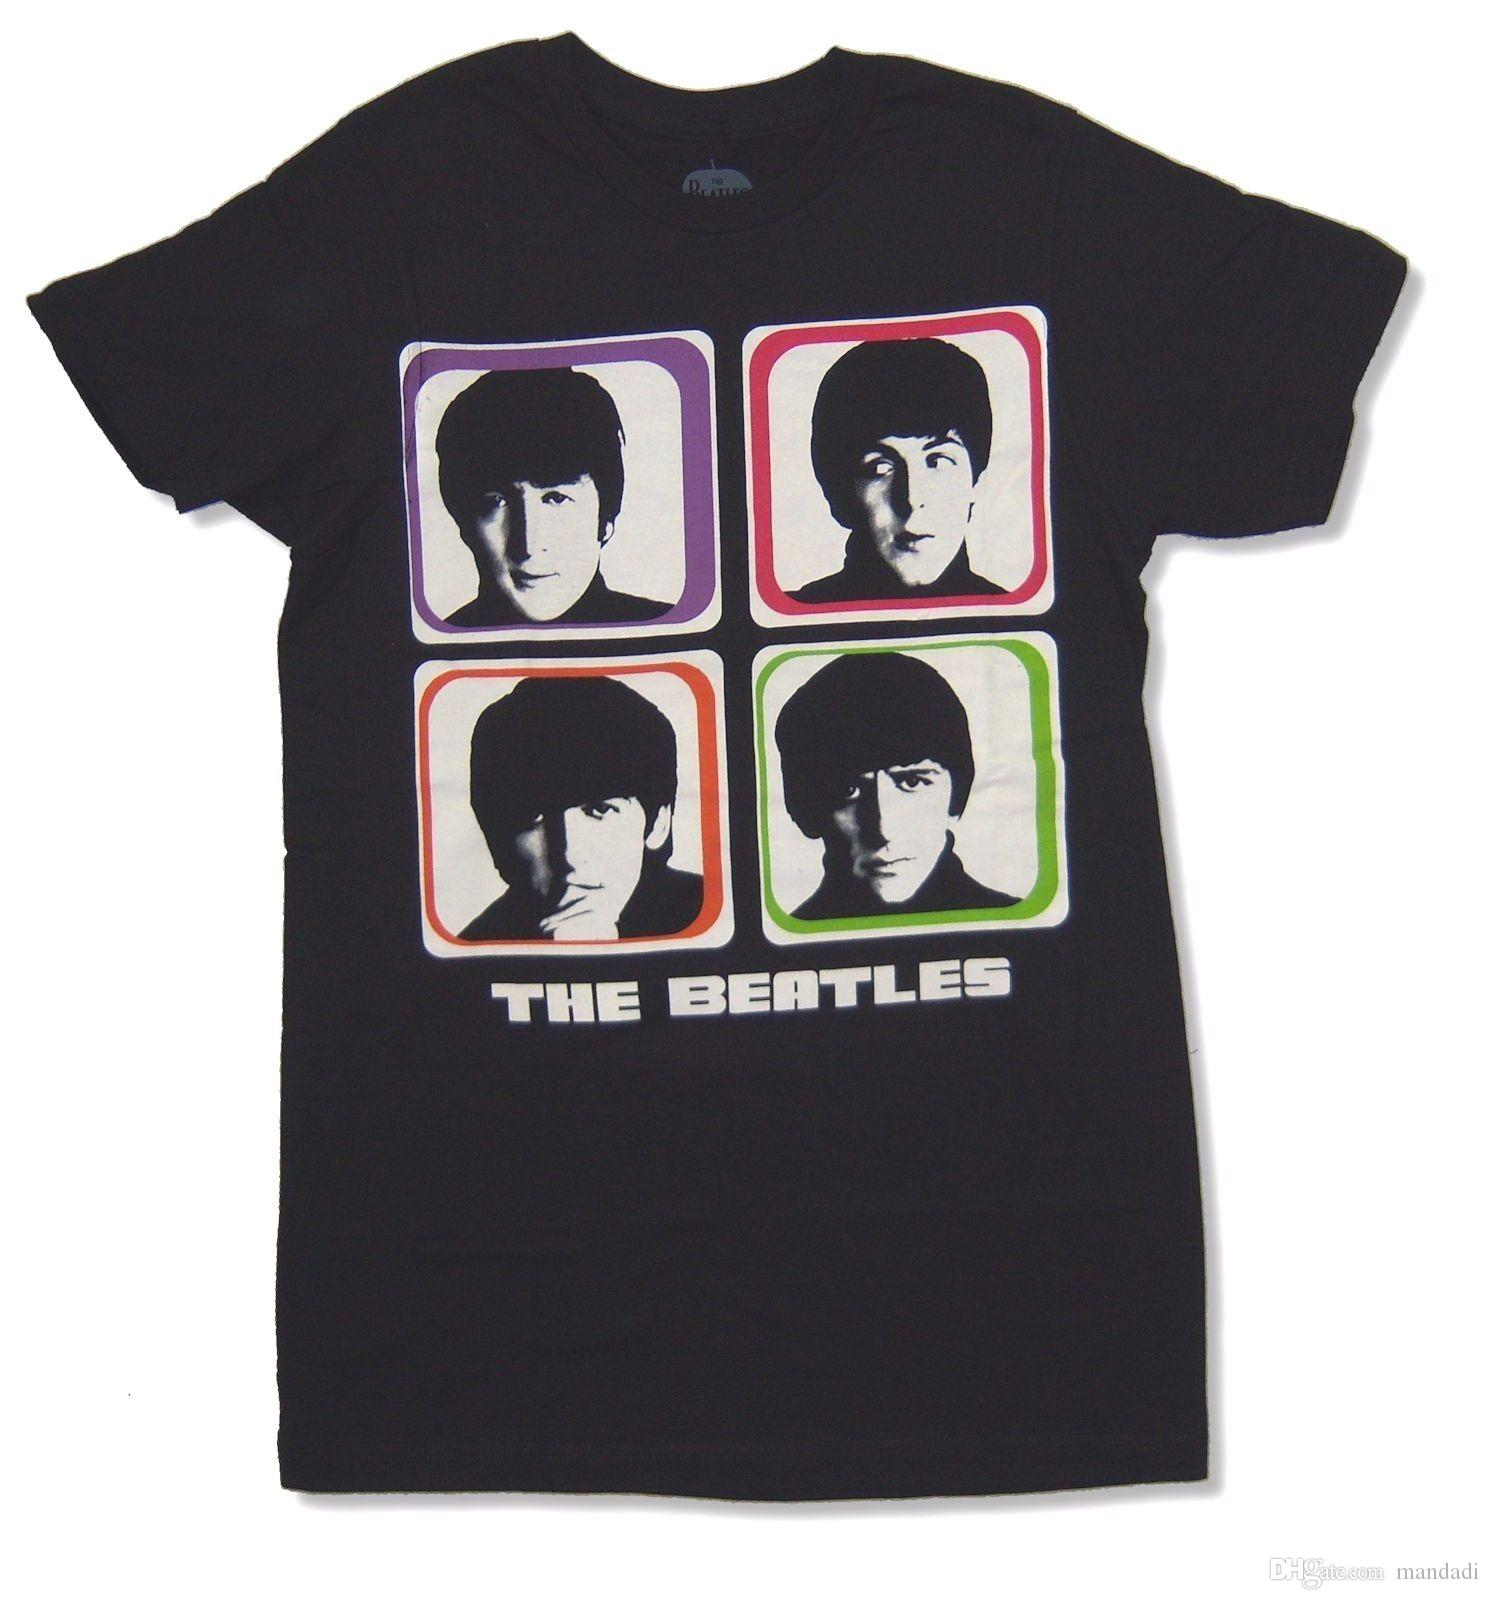 "THE BEATLES ""COLOR BLOCKS"" BLACK BAND T-SHIRT NEW OFFICIAL ADULT"